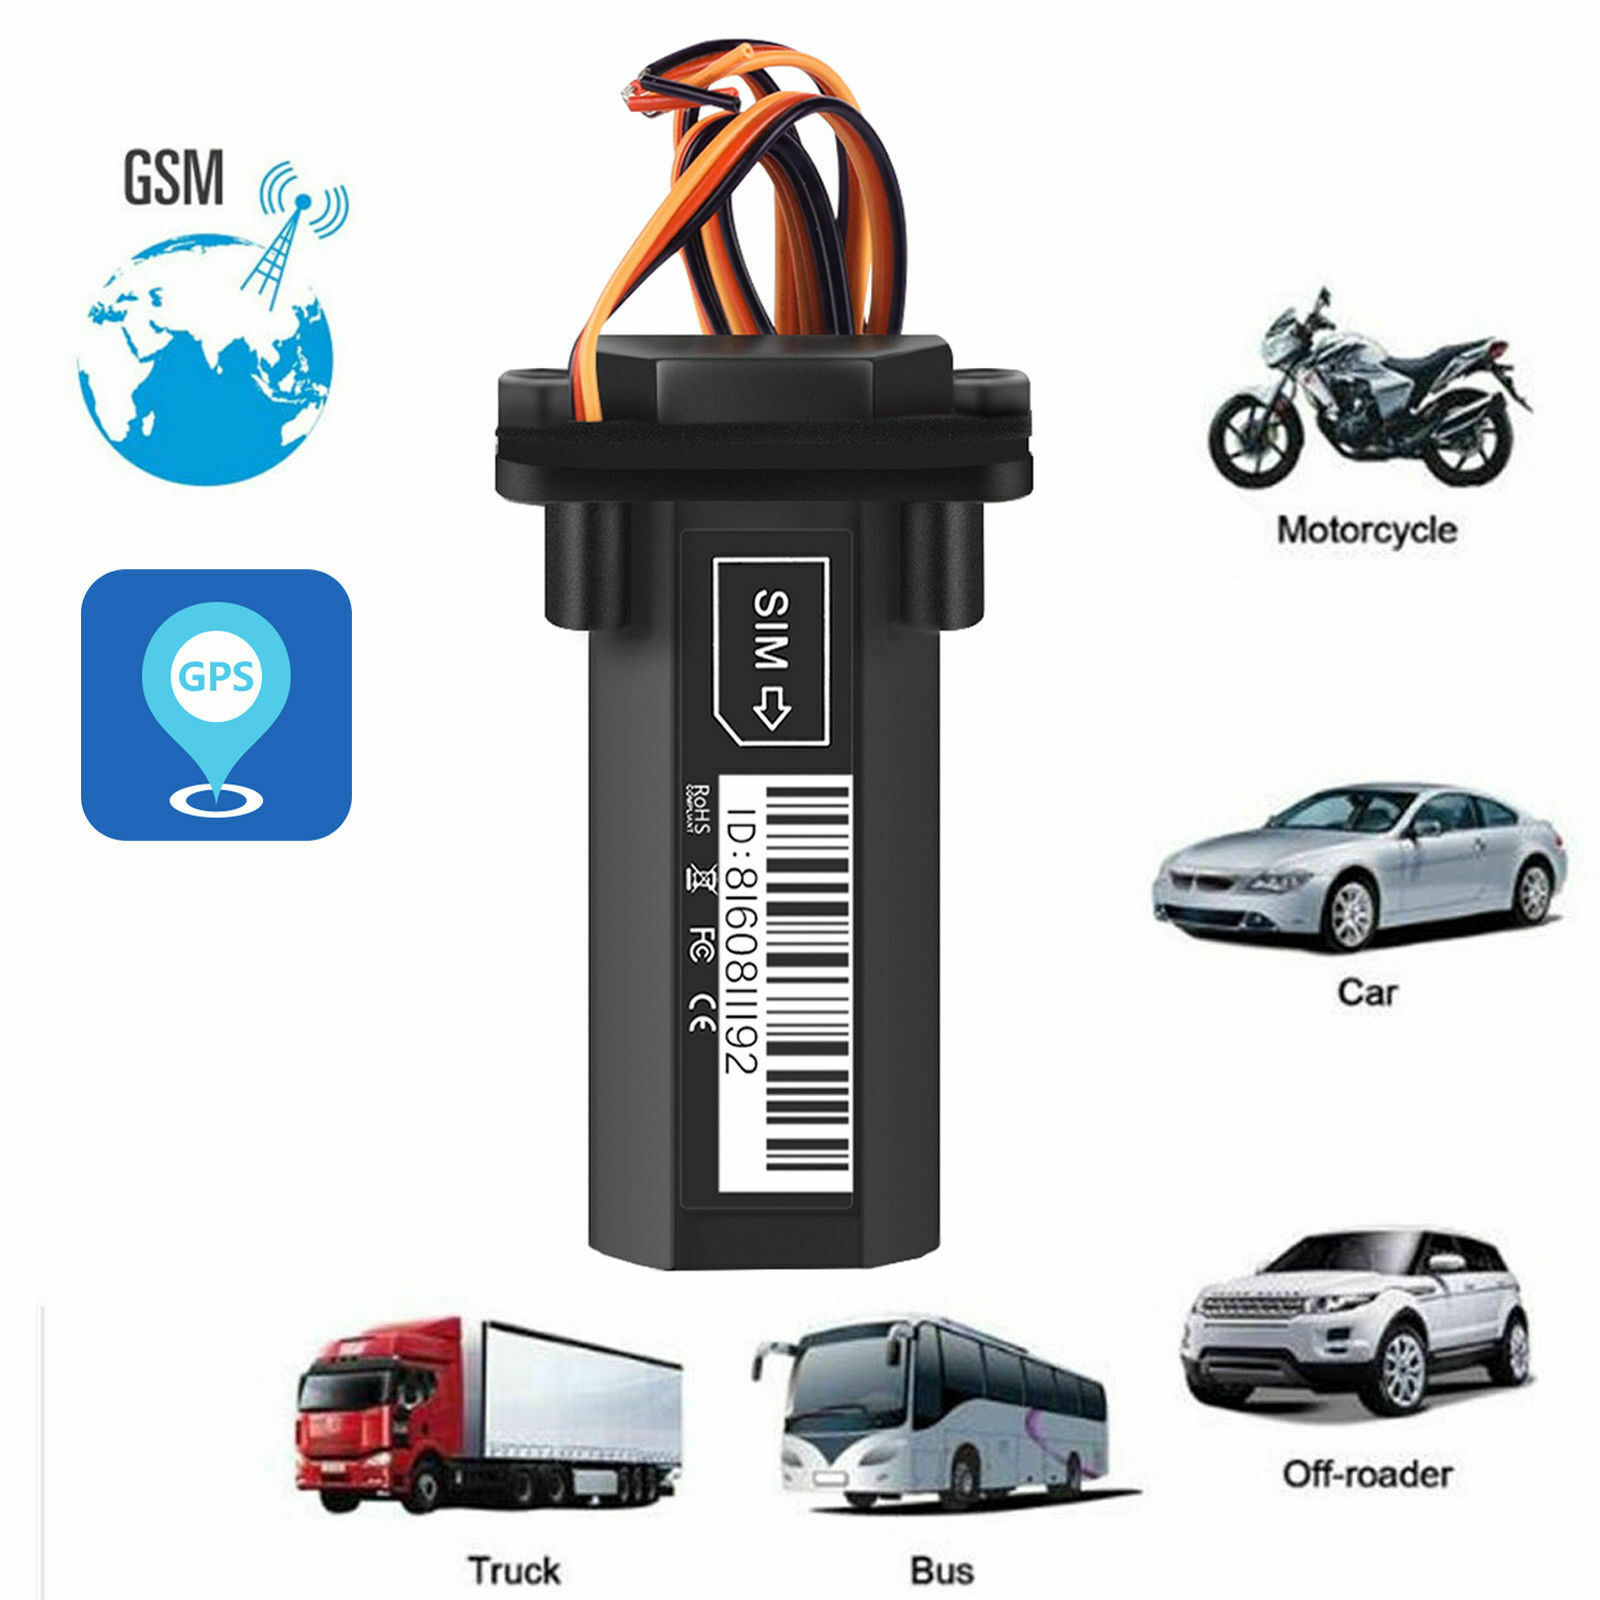 Car-Vehicle-Motorcycle-GSM-GPS-Tracker-Locator-Global-Real-Time-Tracking-Device thumbnail 8